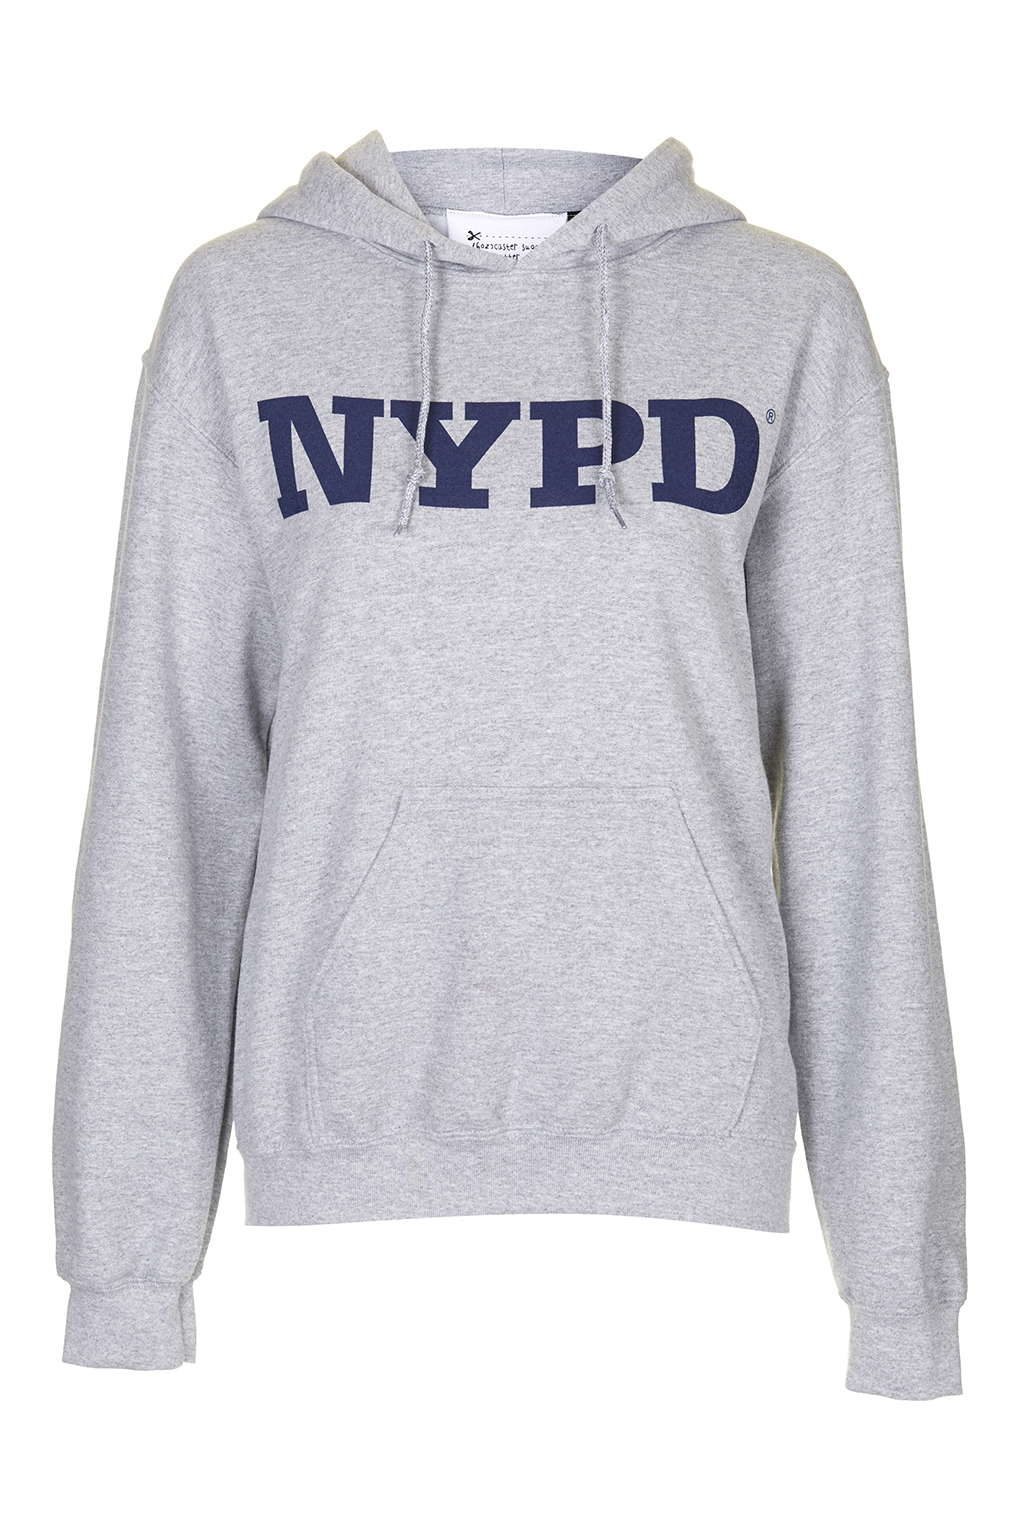 2a49ae0f TOPSHOP Nypd Hoody By Tee & Cake in Gray - Lyst